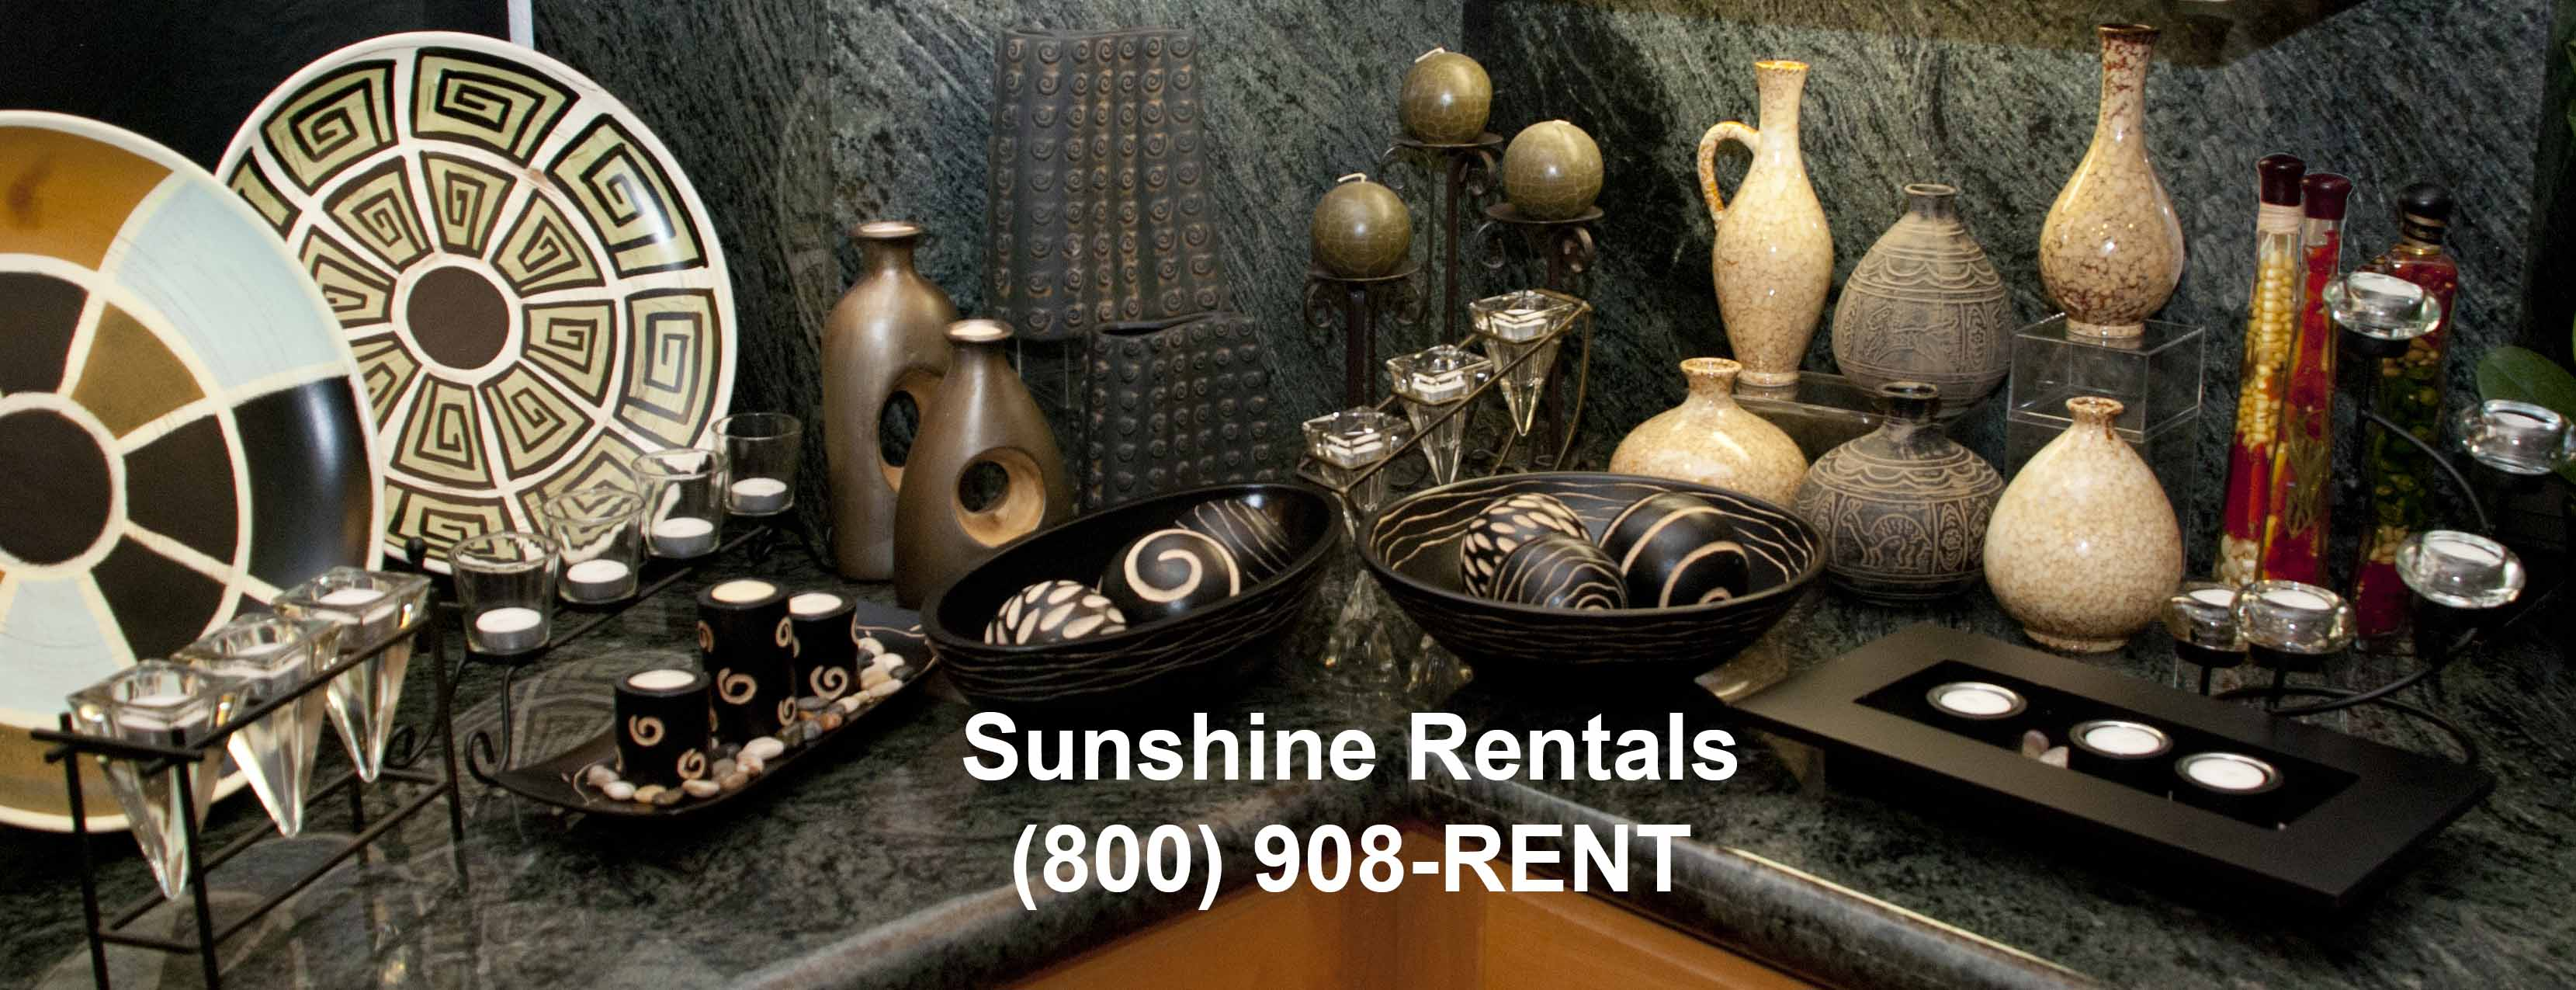 Sunshine Rentals Decorative Options